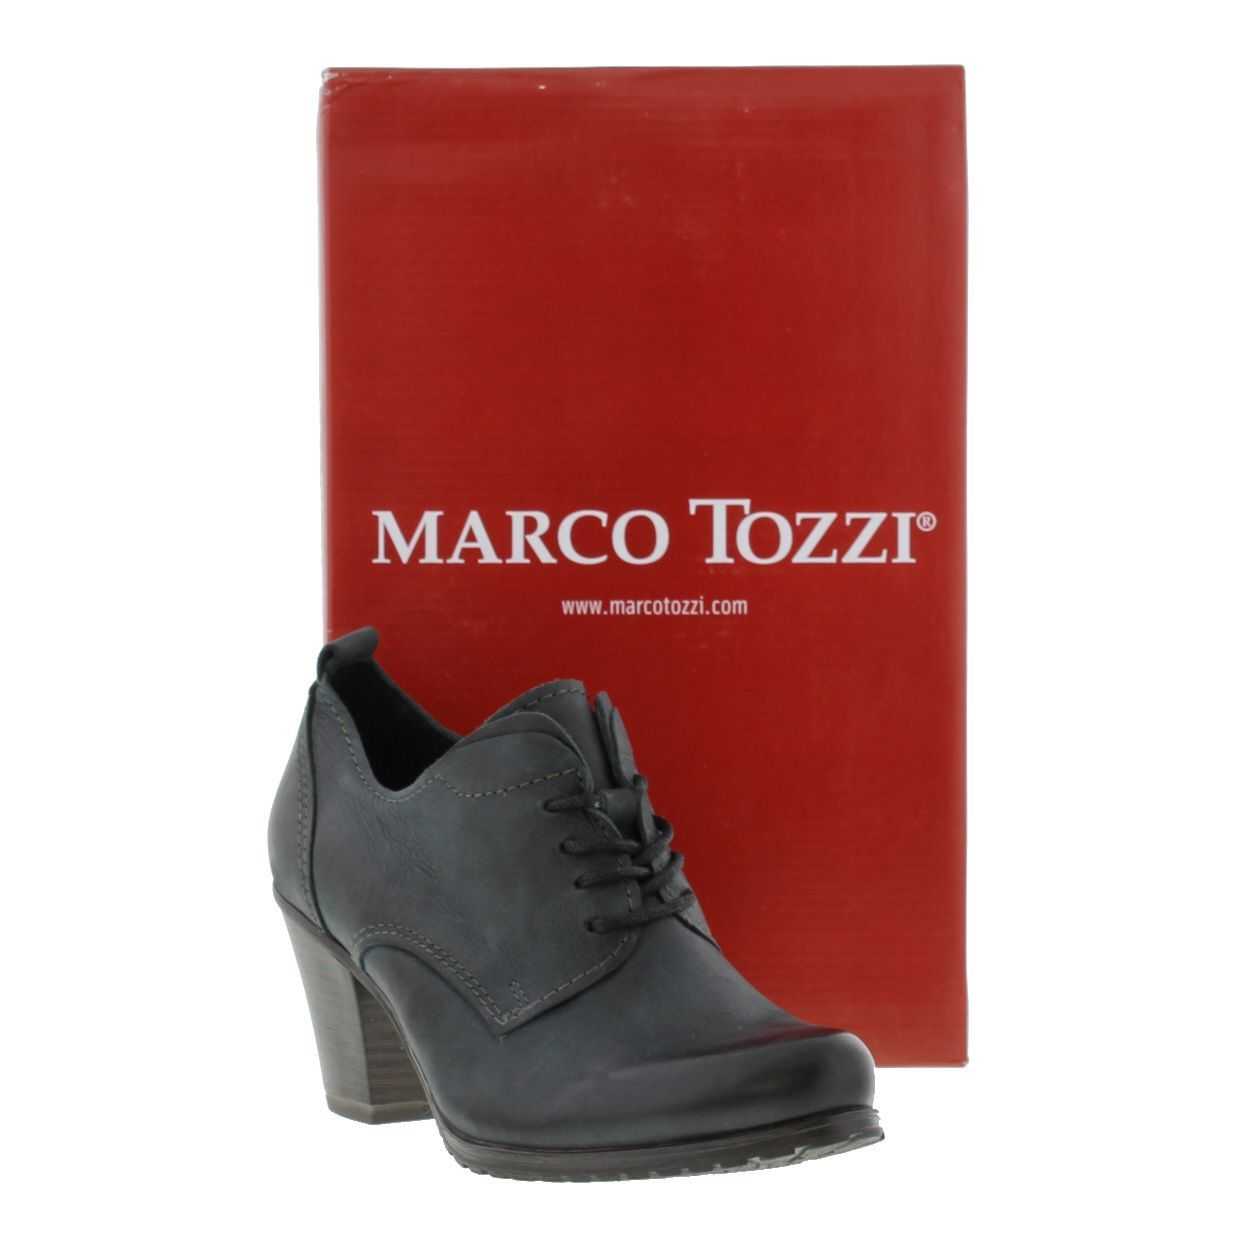 73a43fc4cc78 Marco Tozzi Boots, Shoes, Womens 23306 Navy Antic - £49.99   New ...